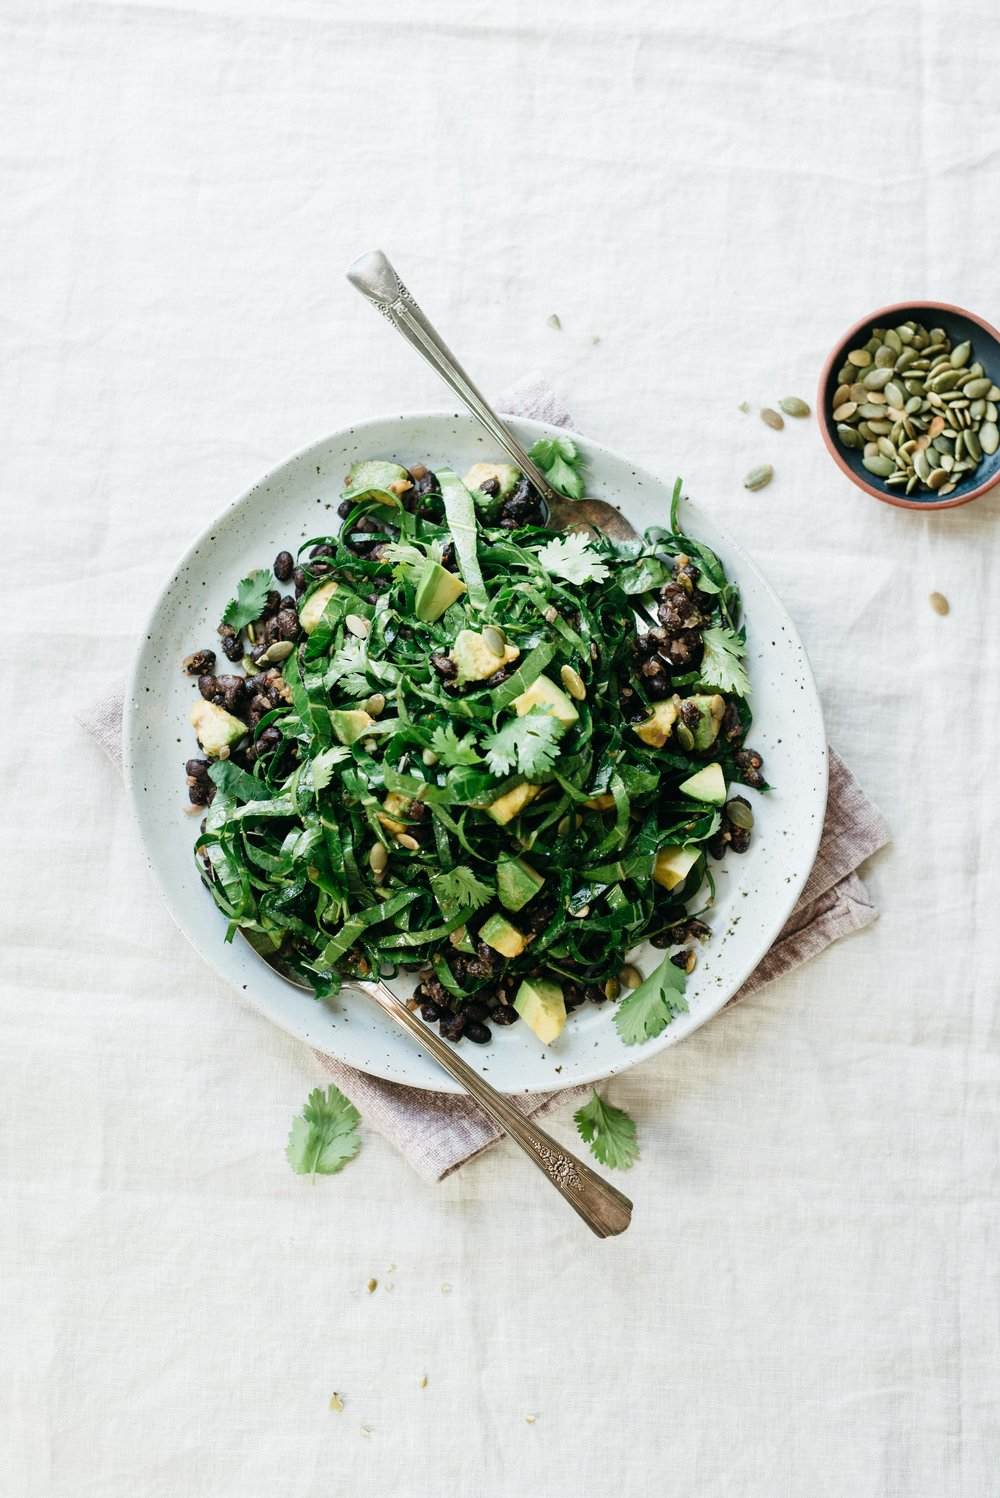 Chipotle Black Beans w/ Collard Greens, Avocado, and Chipotle-Lime Vinaigrette | dolly and oatmeal